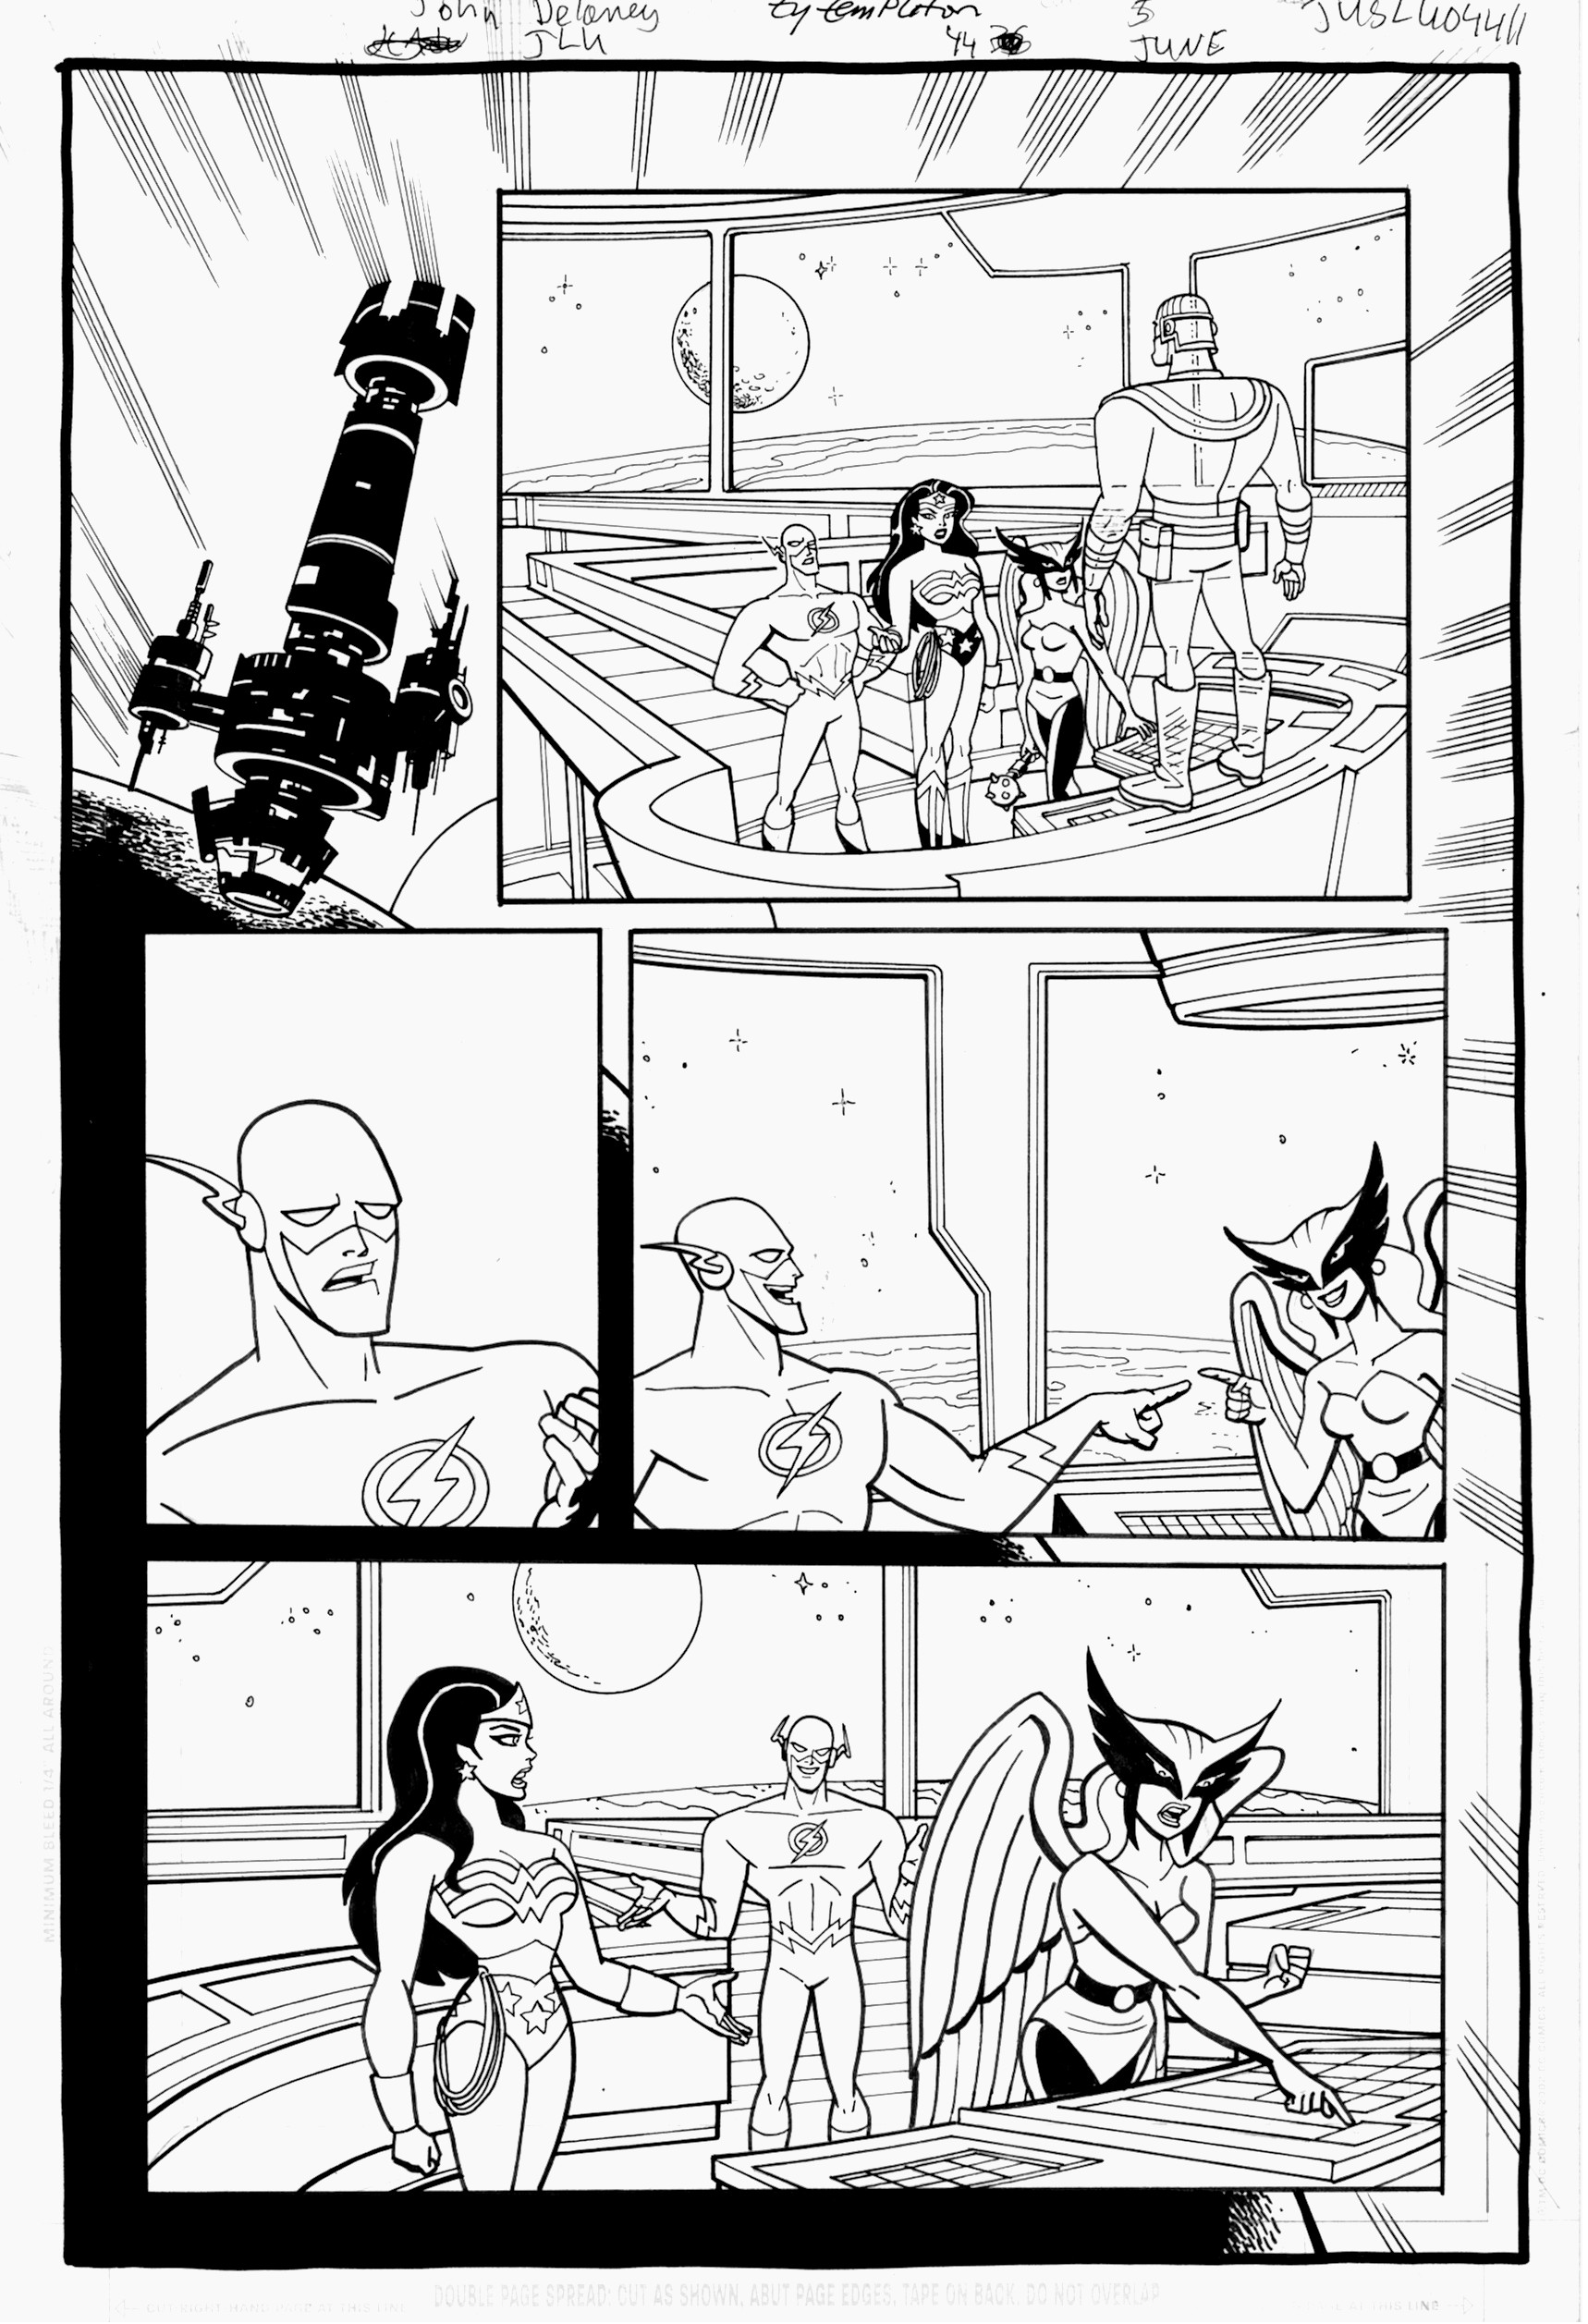 Justice League Unlimited Coloring Pages - Coloring Home | 2514x1718